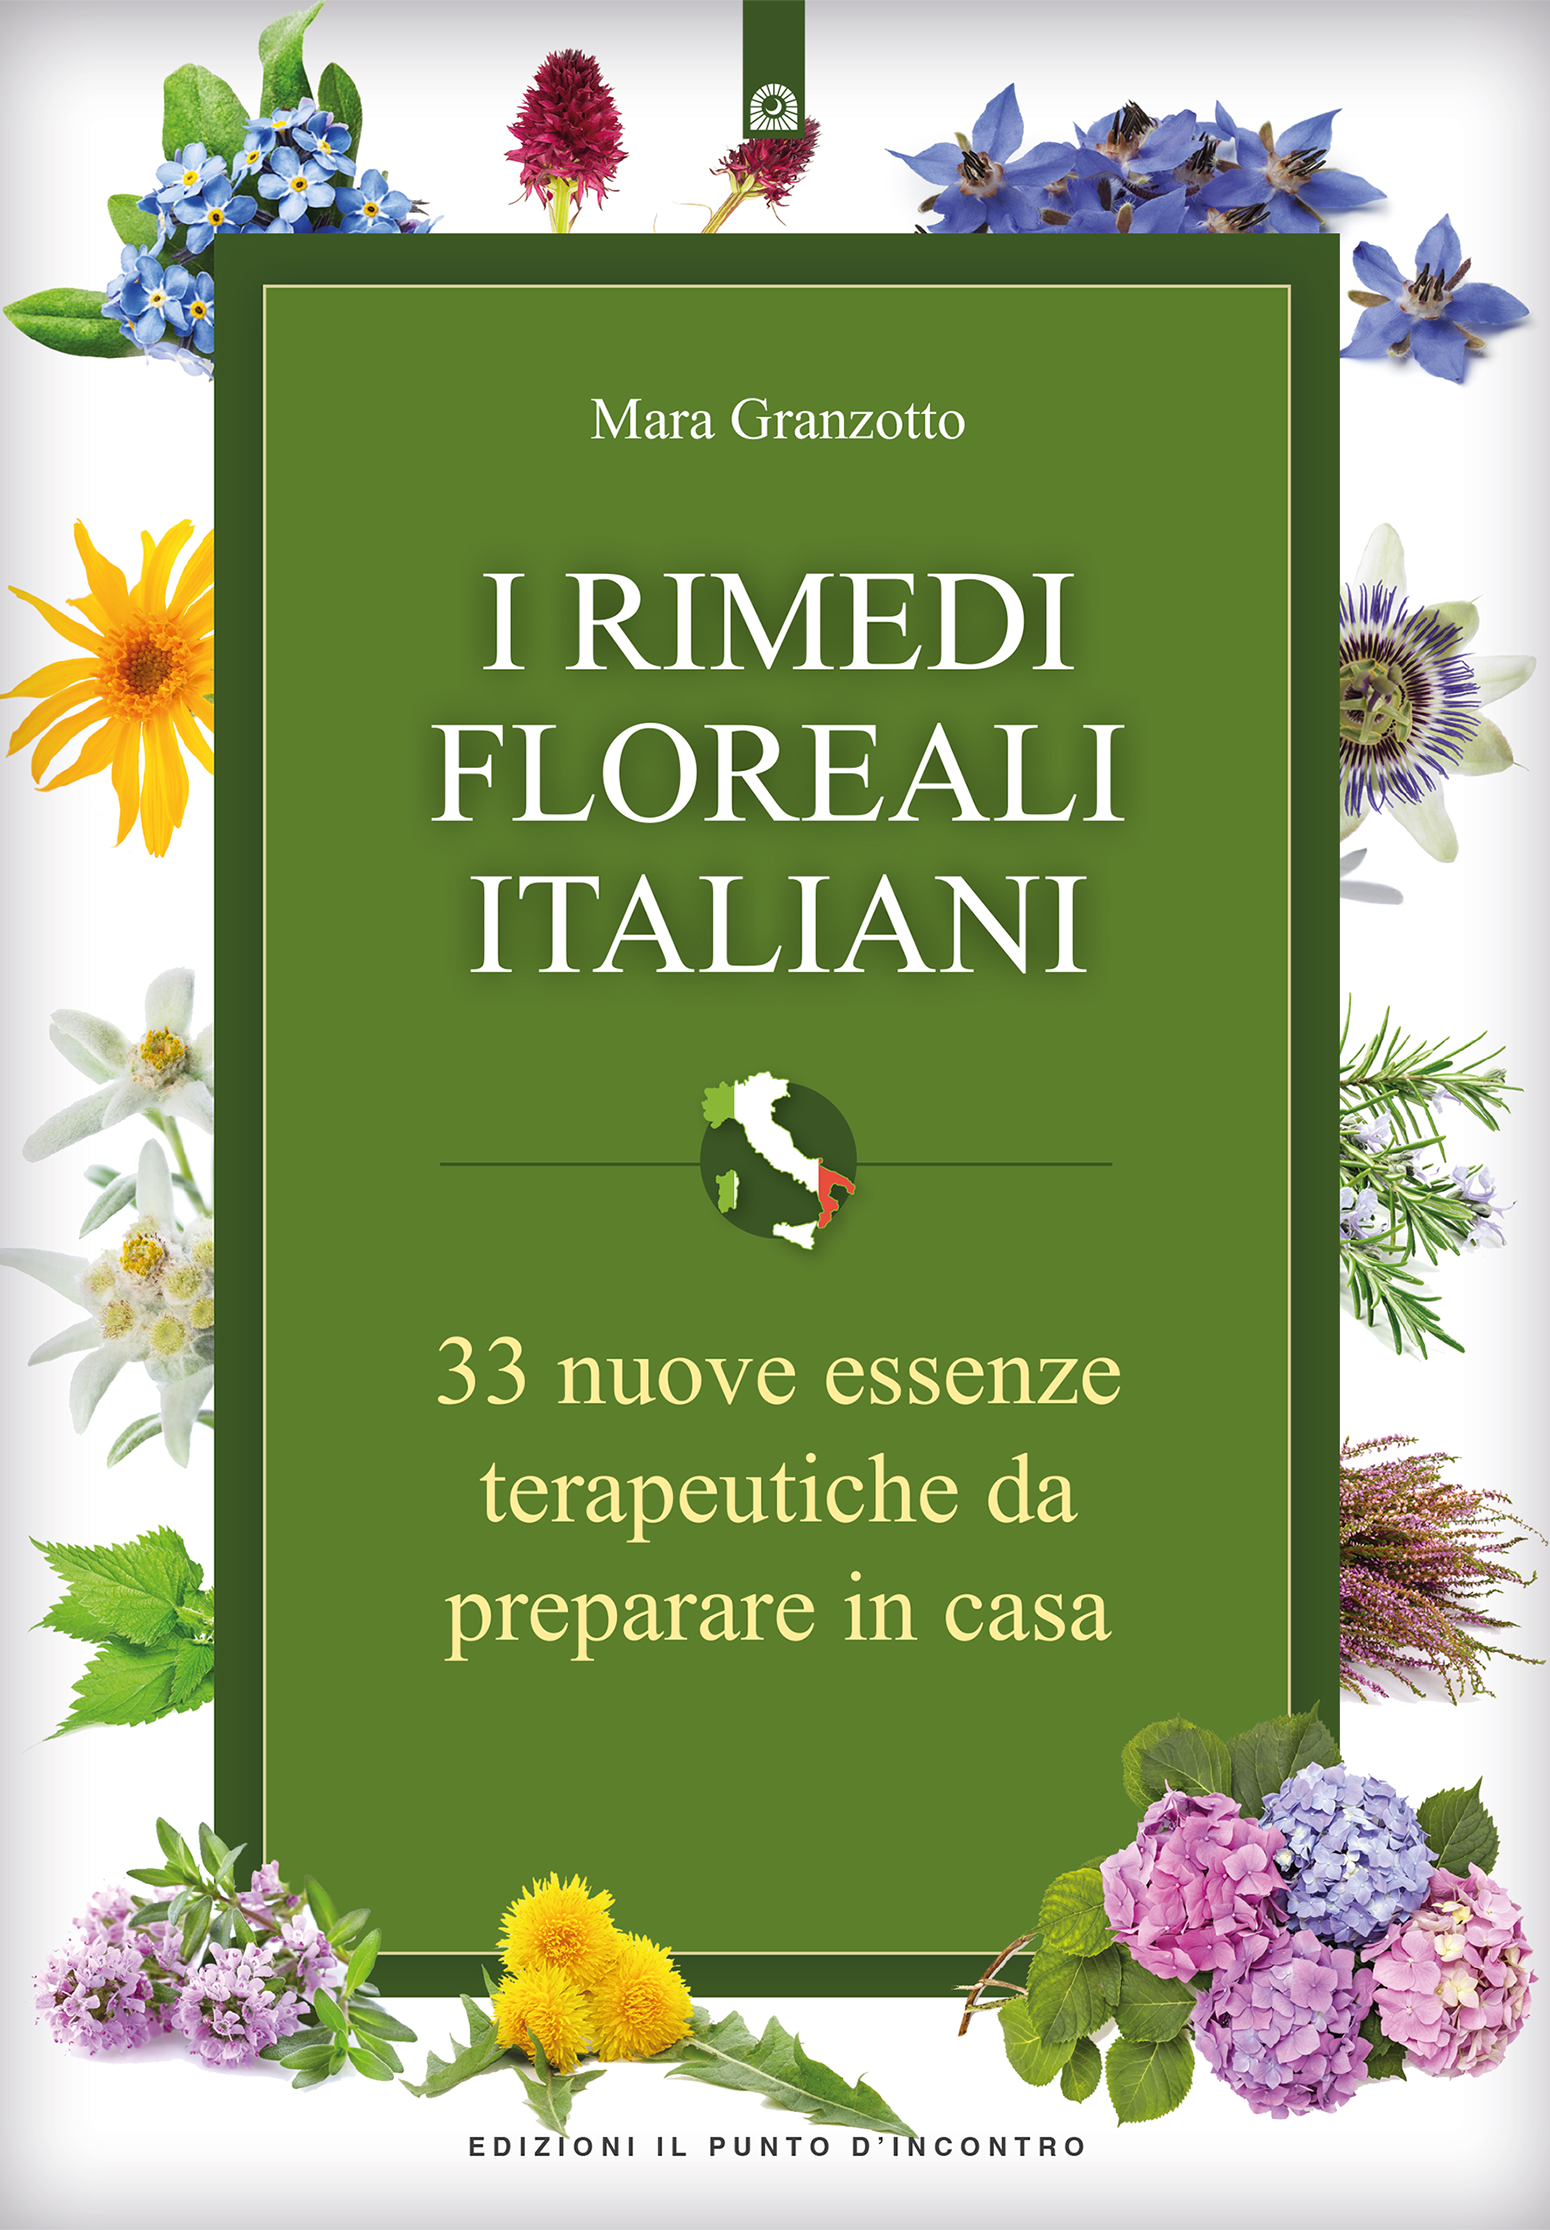 I rimedi floreali italiani ( Italian flower remedies )